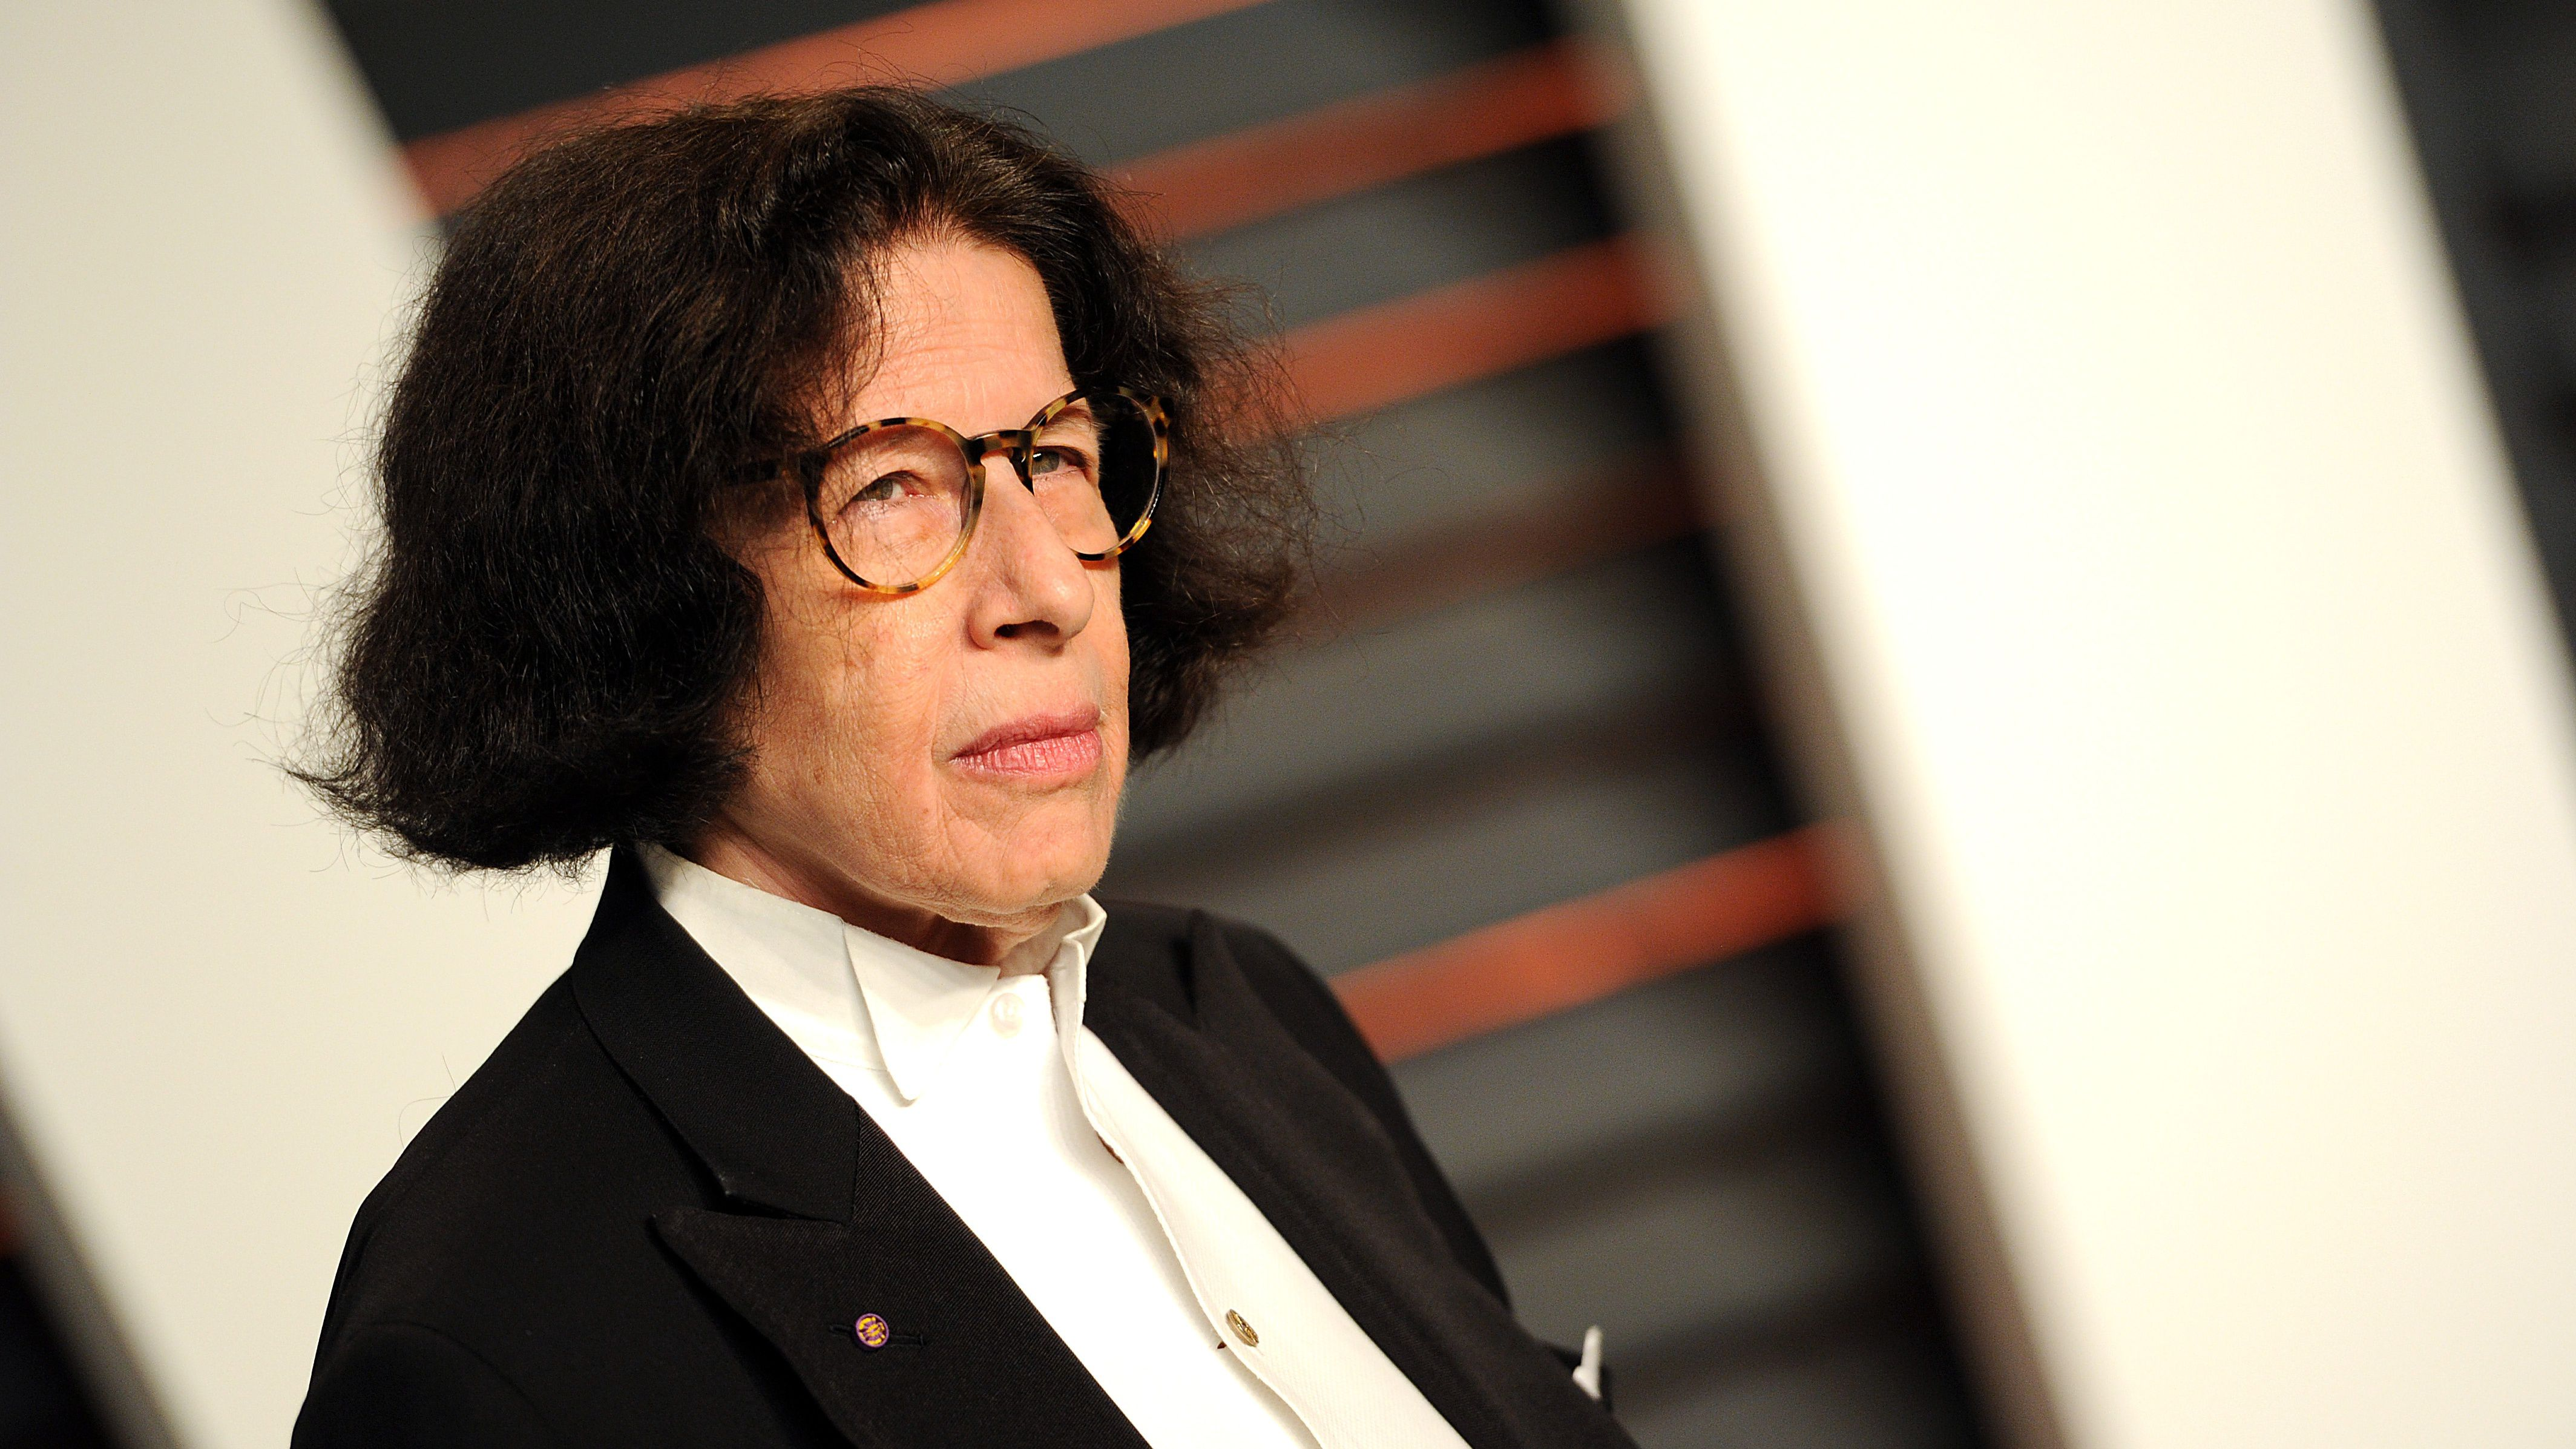 Author Fran Lebowitz arrives at the 2015 Vanity Fair Oscar Party on Sunday, Feb. 22, 2015, in Beverly Hills, Calif.